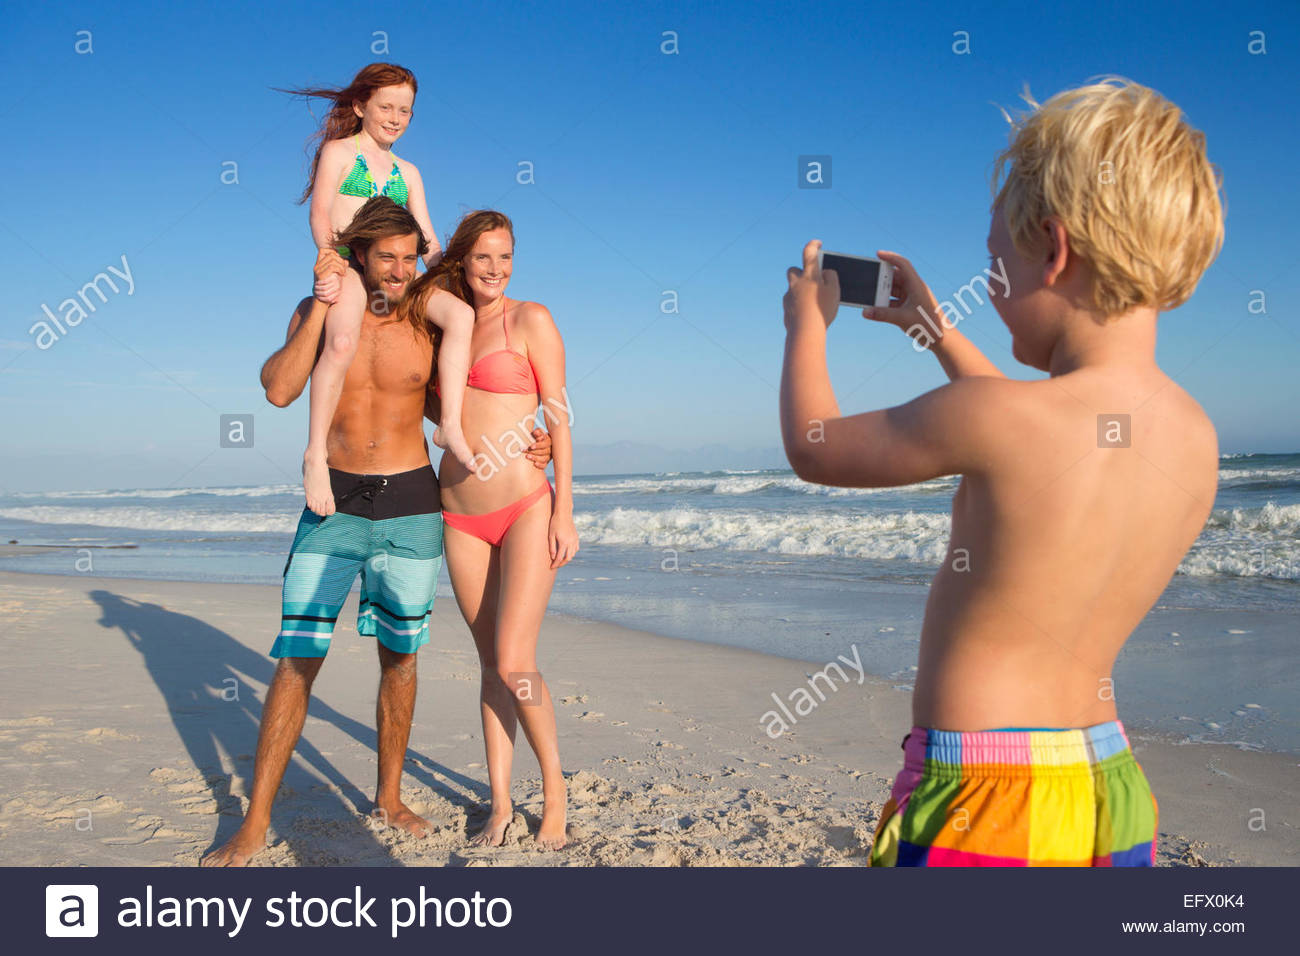 Boy taking photo of mother, father and sister on sunny beach - Stock Image